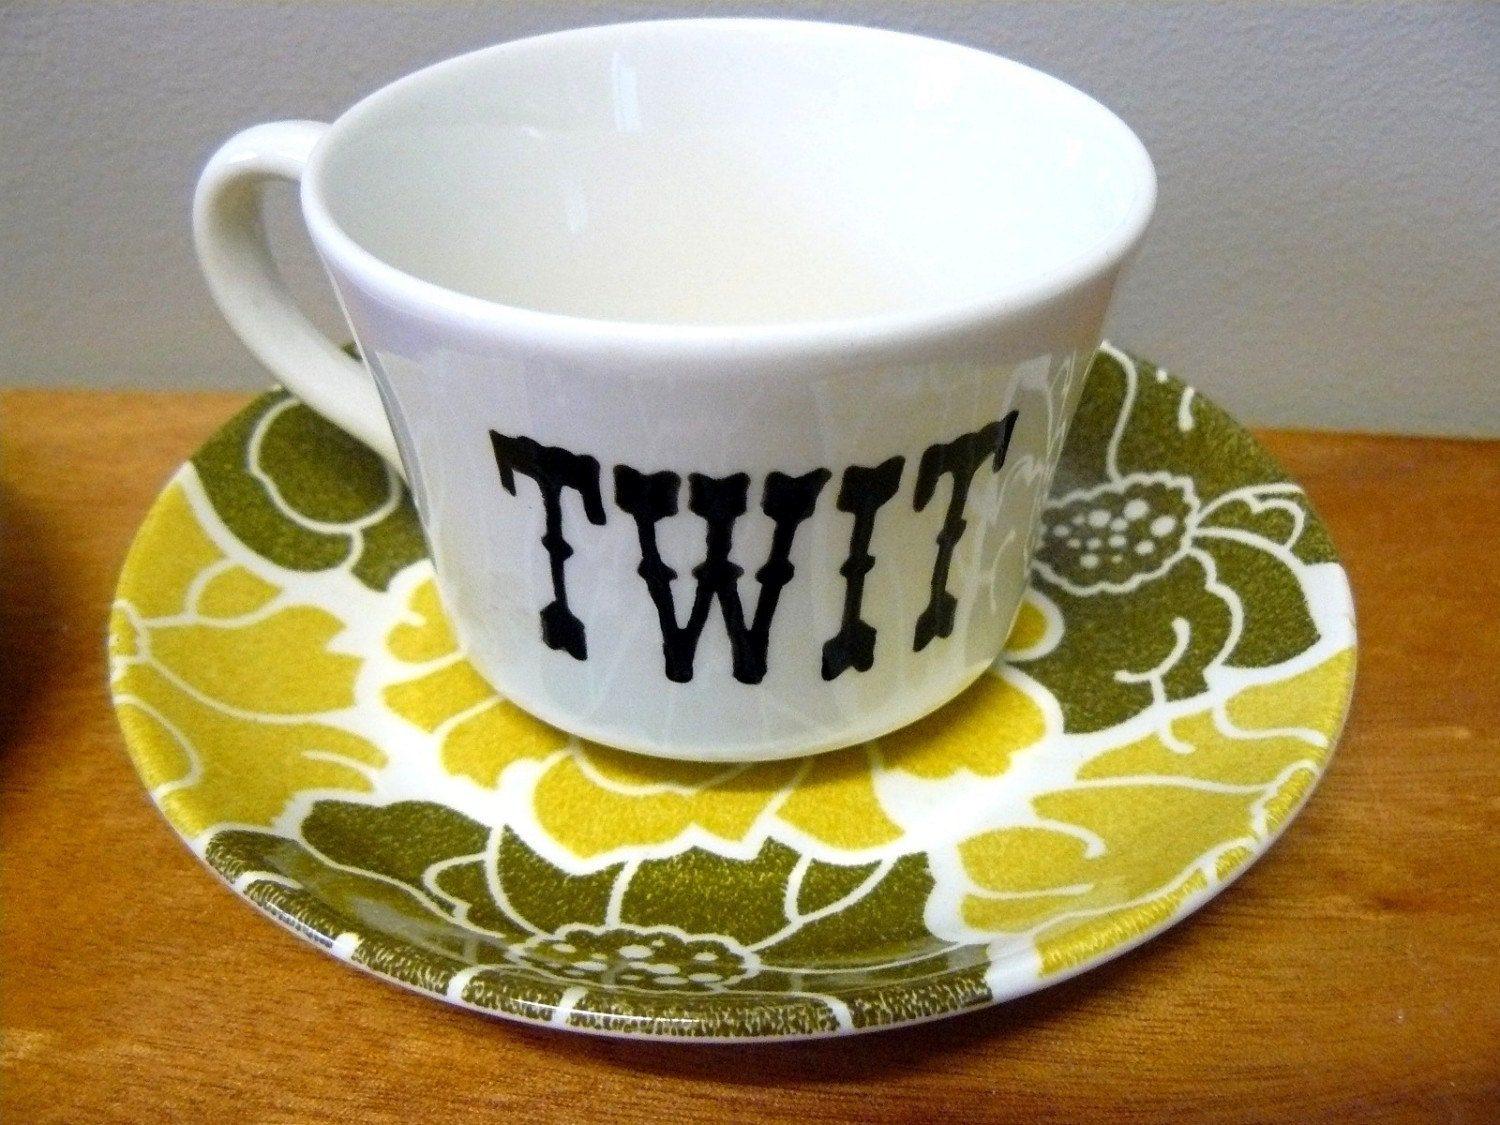 Twit  retro teacup by trixiedelicious on Etsy